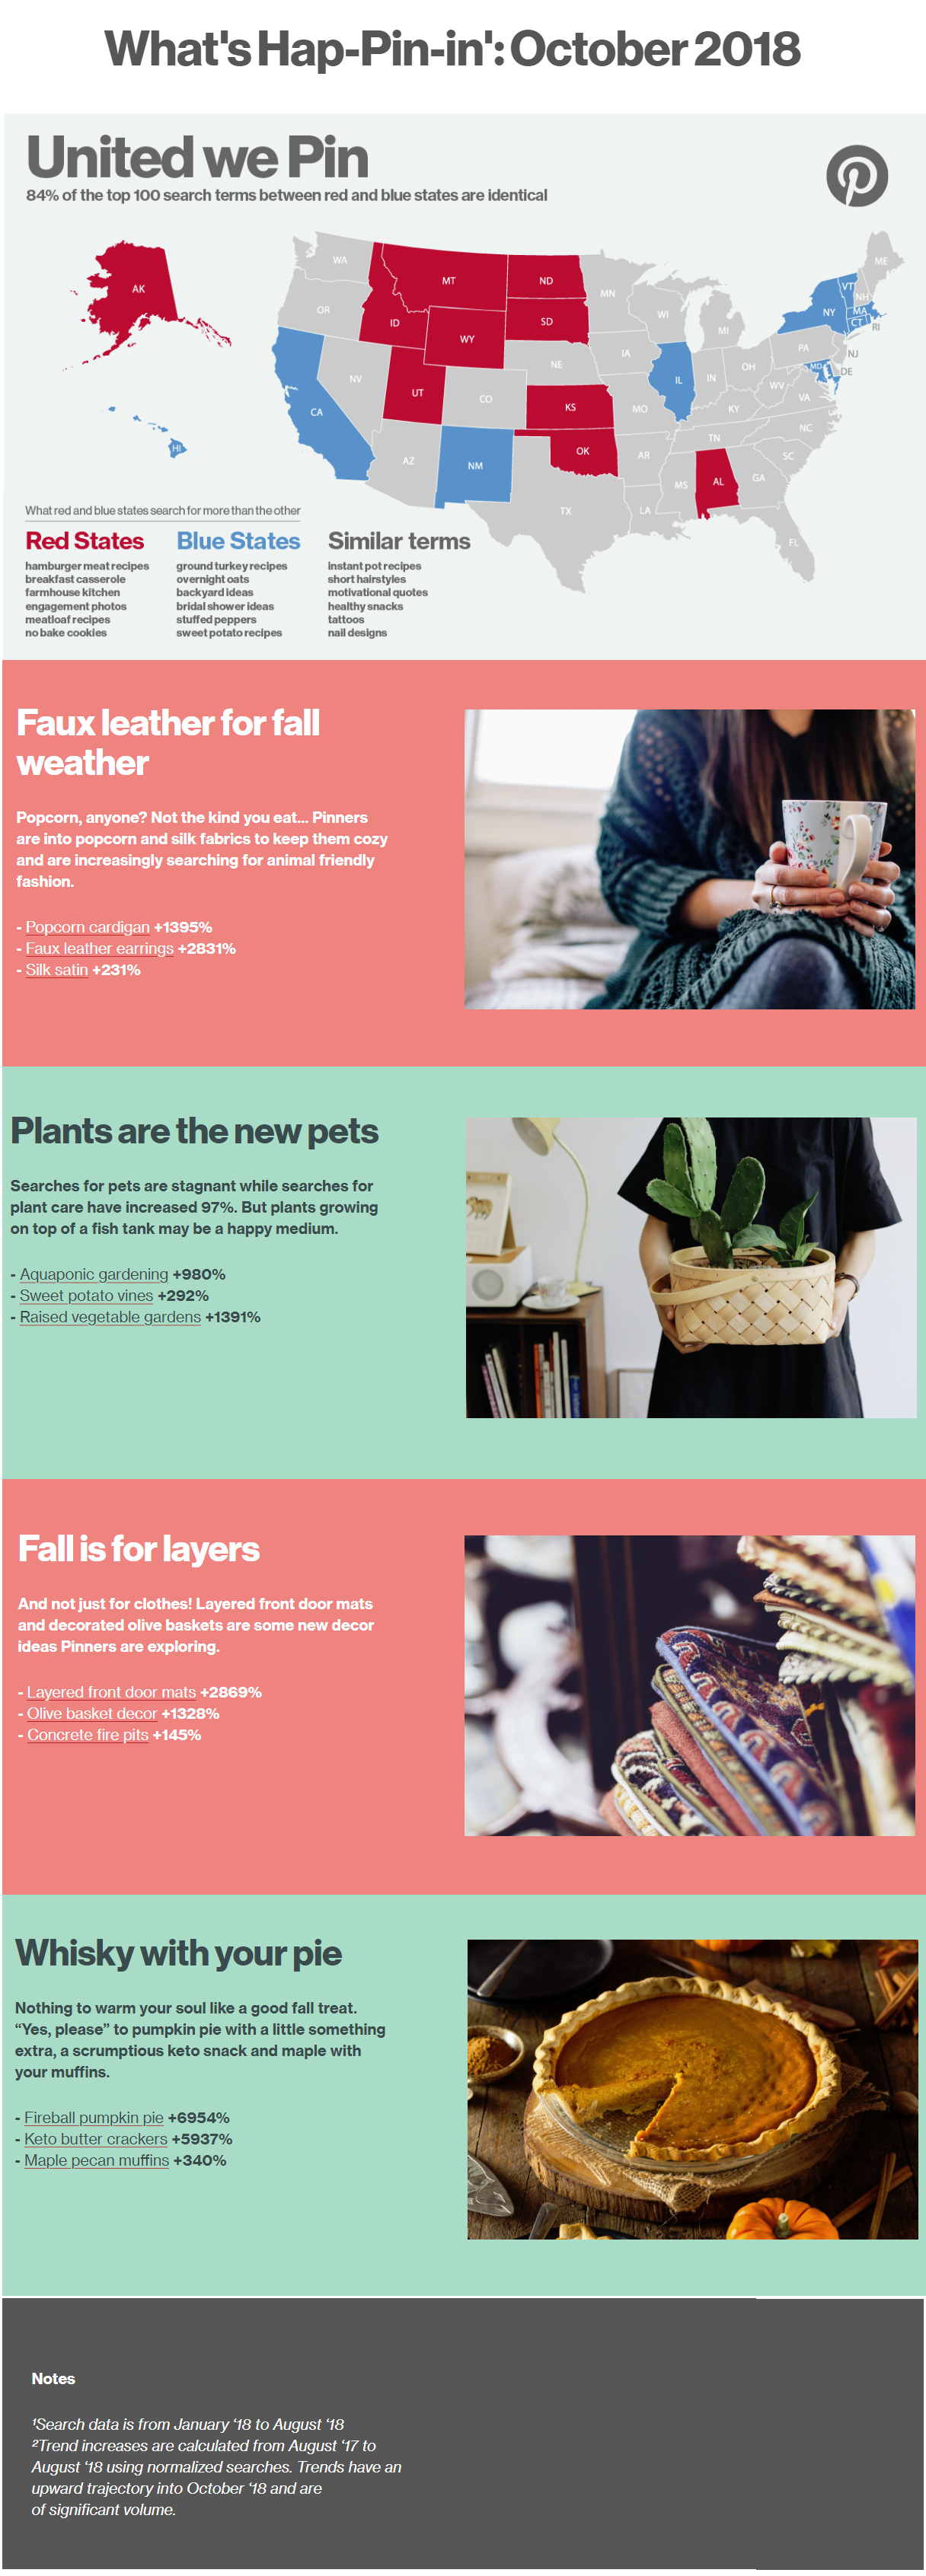 Infographic outlines a range of Pinterest usage trends